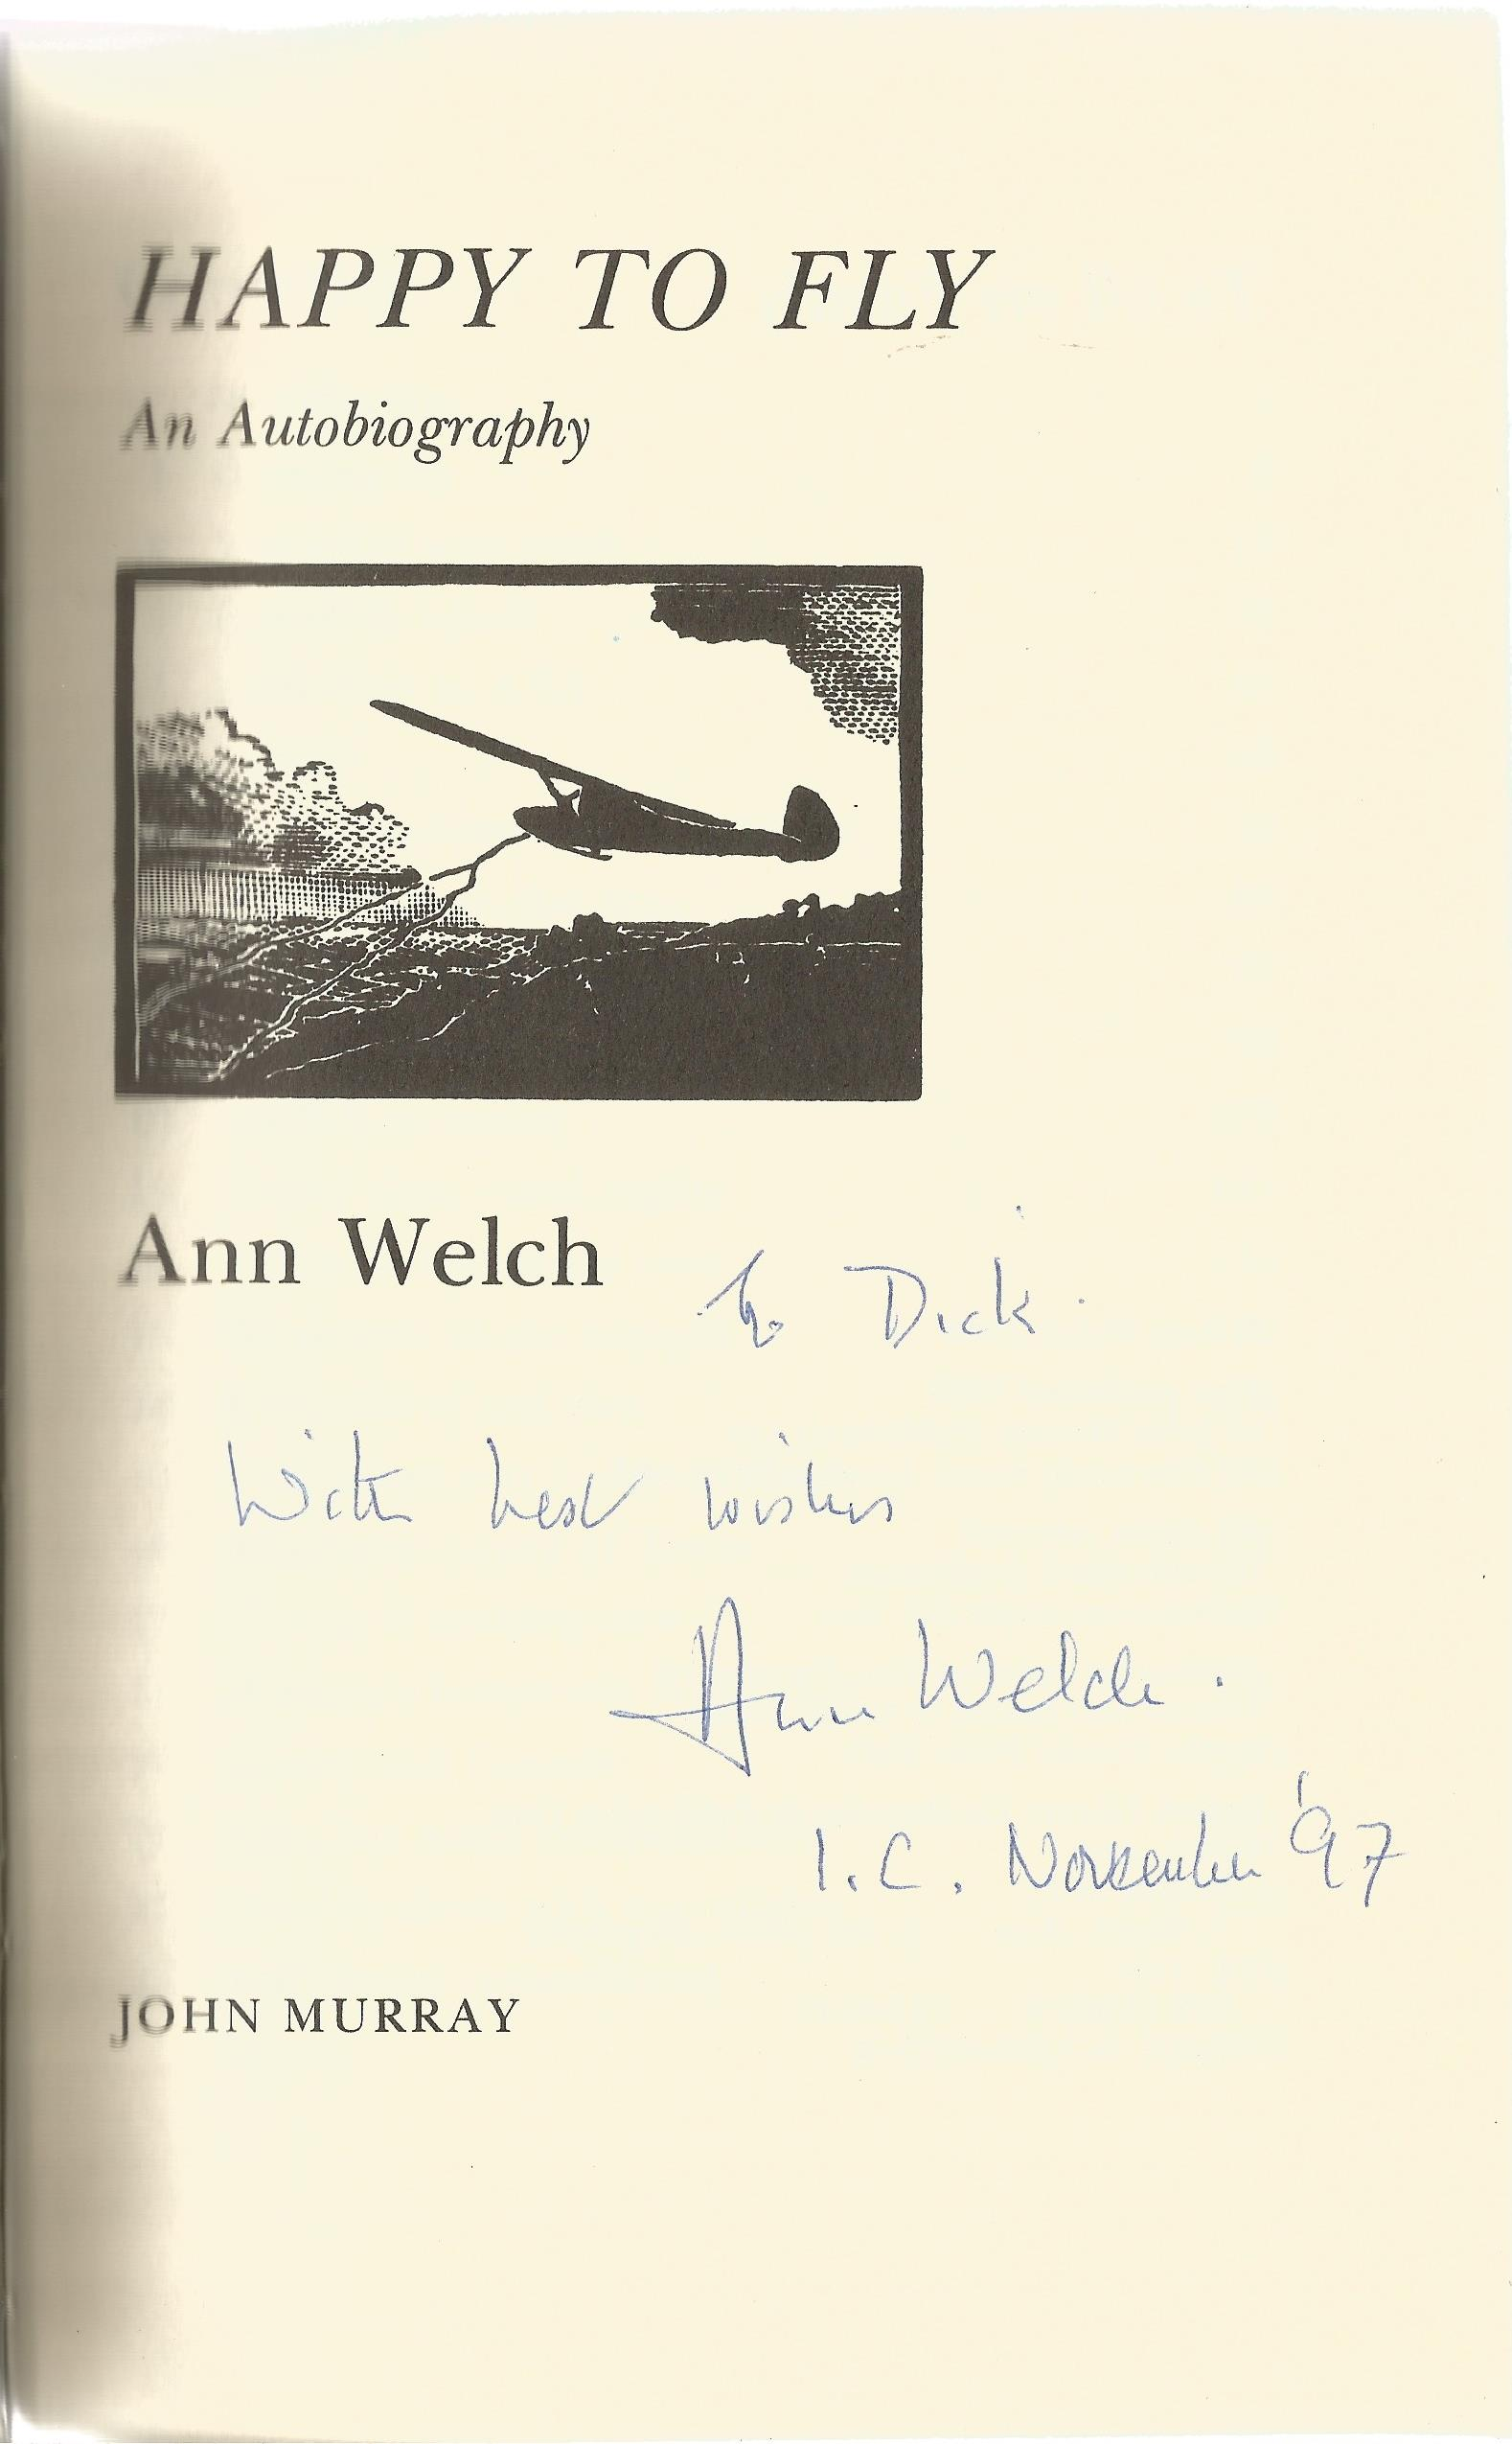 Ann Welch Hardback Book Happy to Fly An Autobiography signed by the Author on the Title Page First - Image 2 of 2